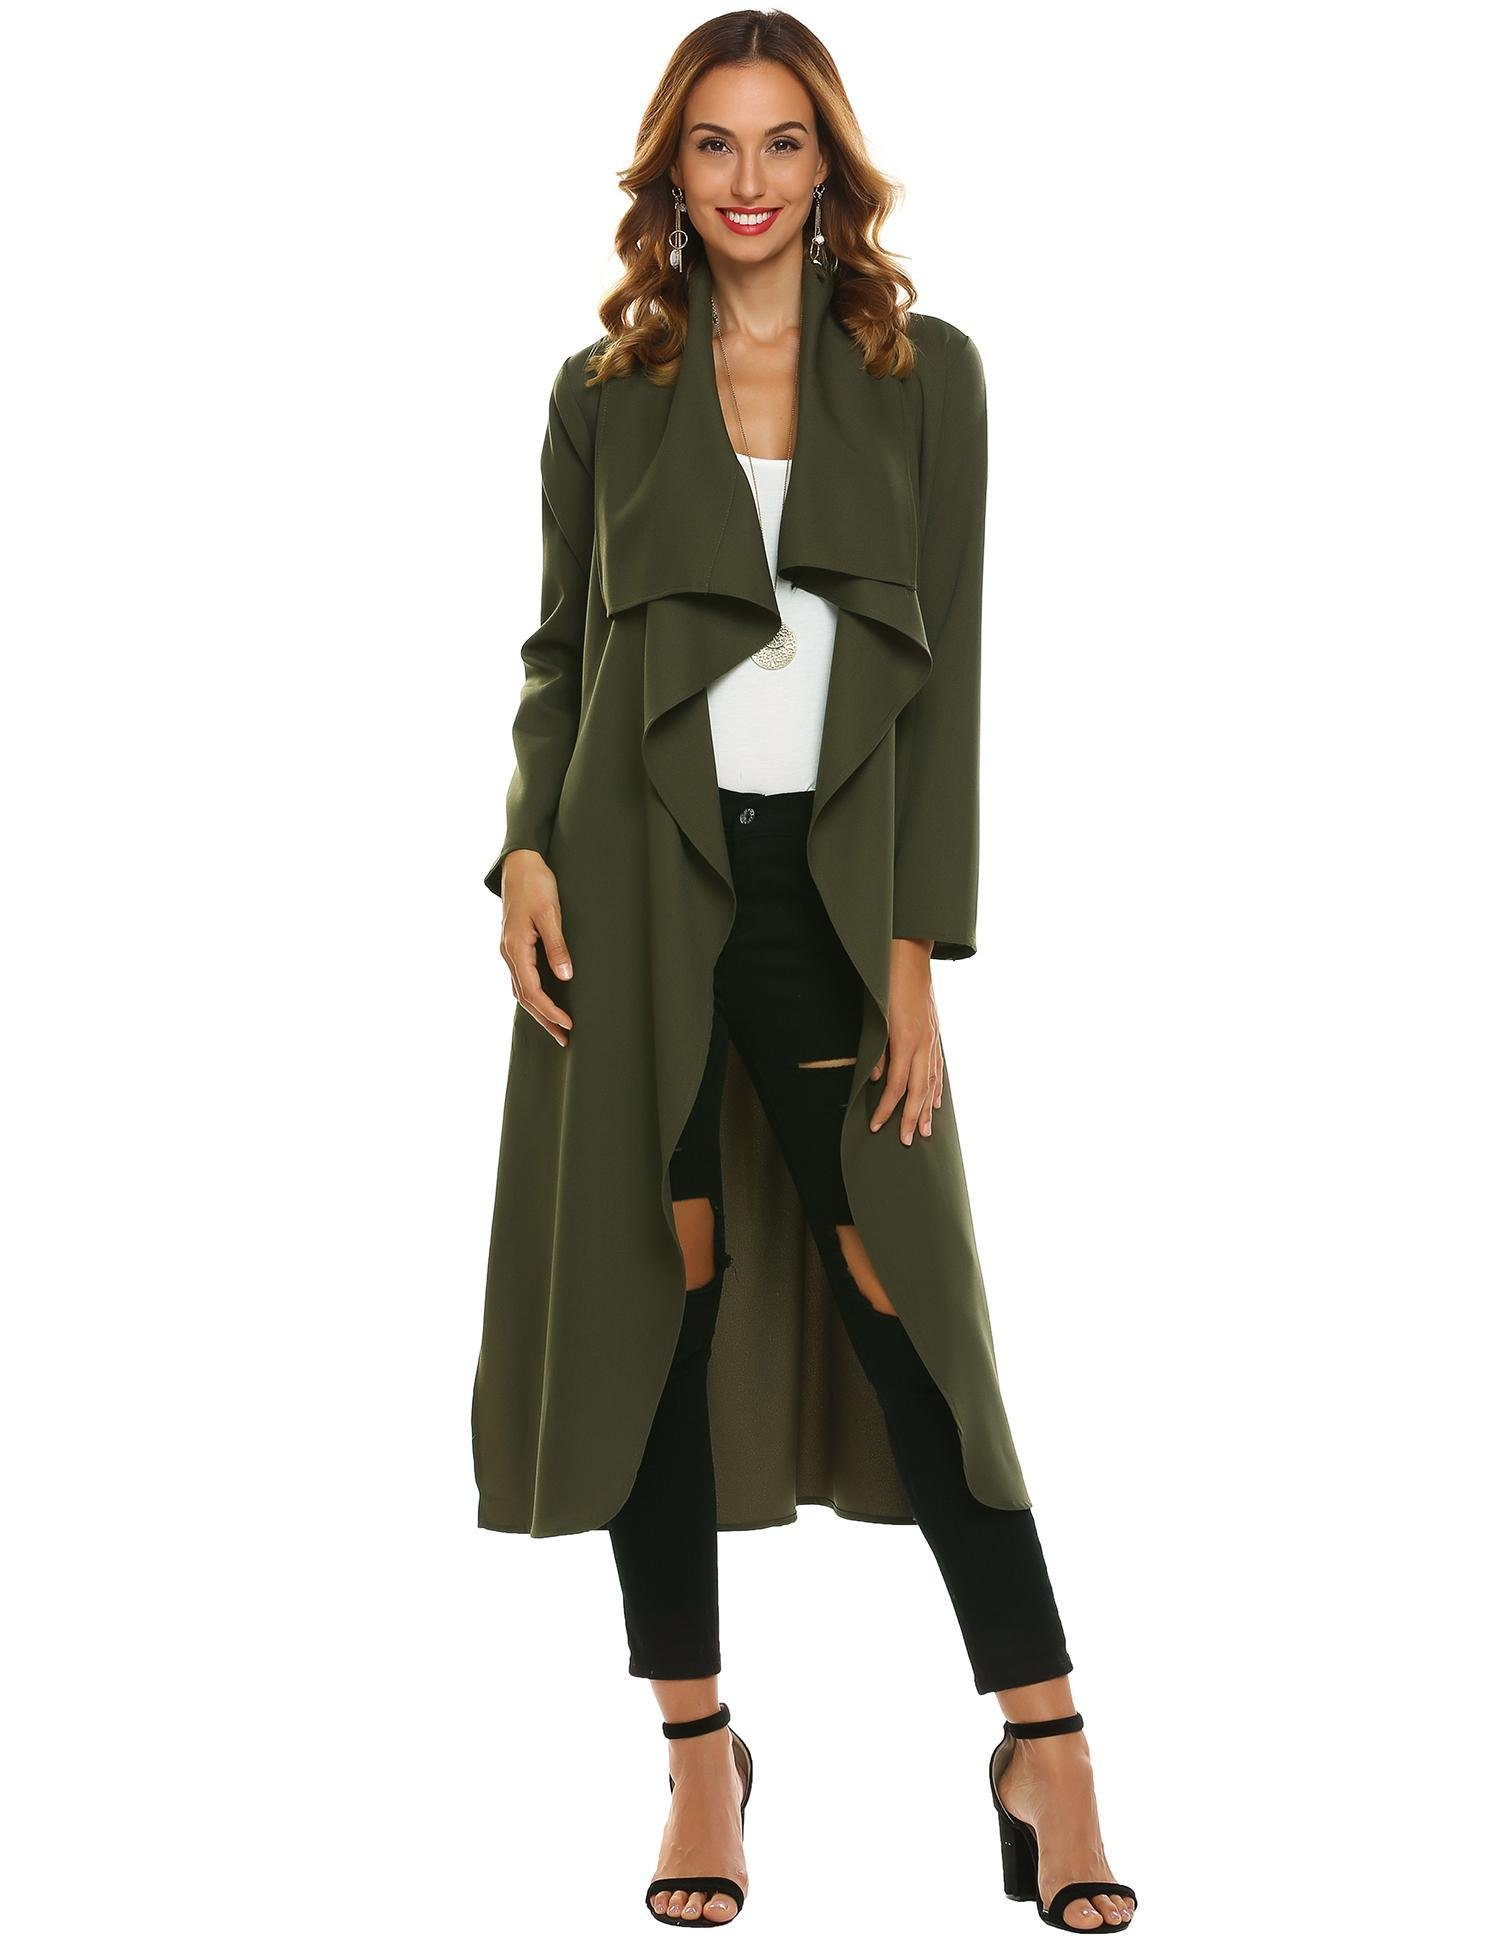 Vansop Women's Front Draped Thin Lightweight Textured Tie Belt Relaxed Fit Soft Trench Coat Jackets